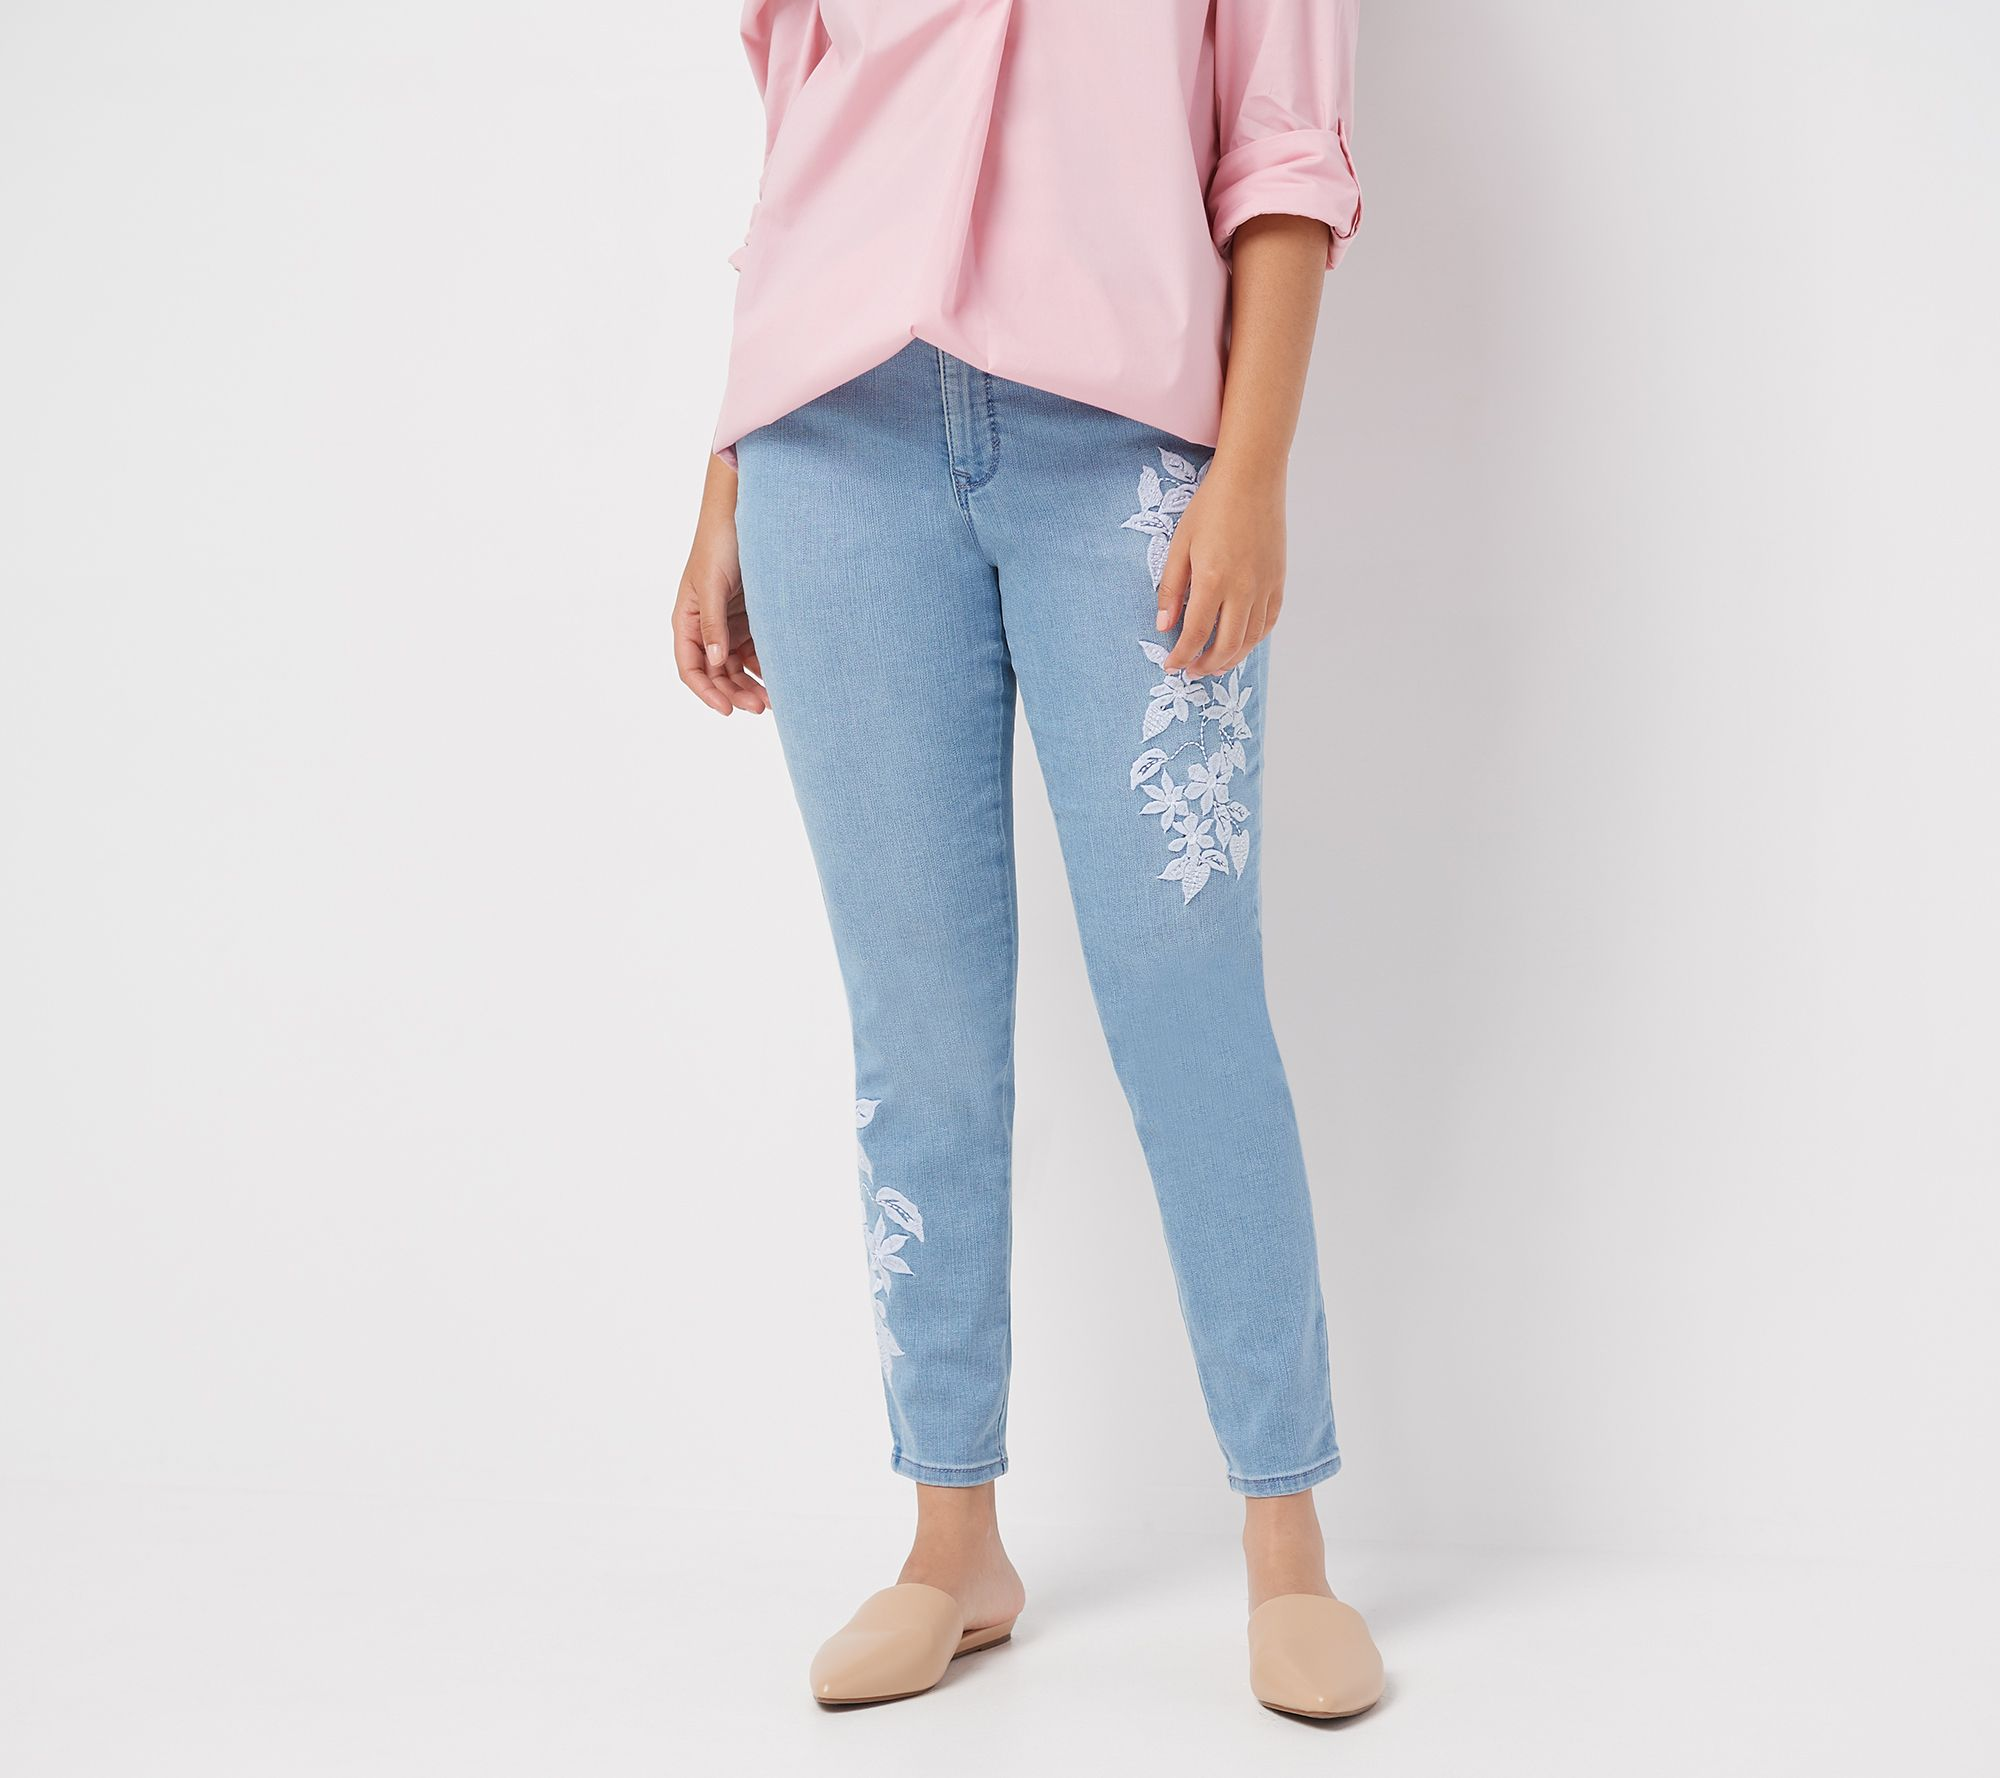 Martha Stewart Embroidered 5-Pocket Ankle Jeans Medium Peacock 16 NEW A309514